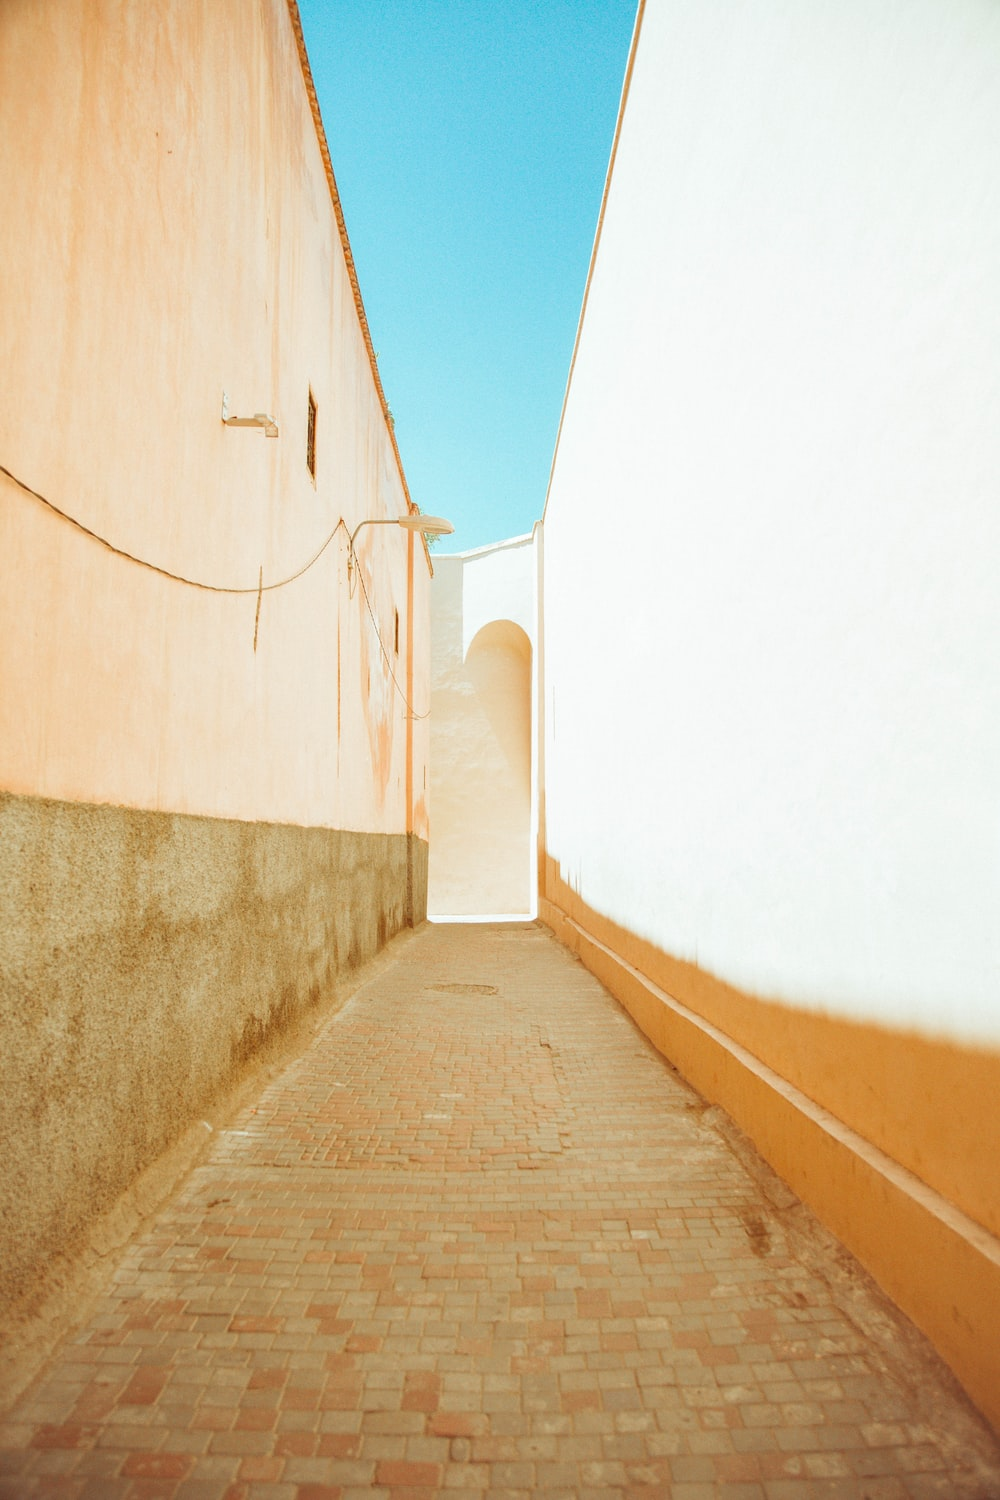 brown wooden pathway between white wall